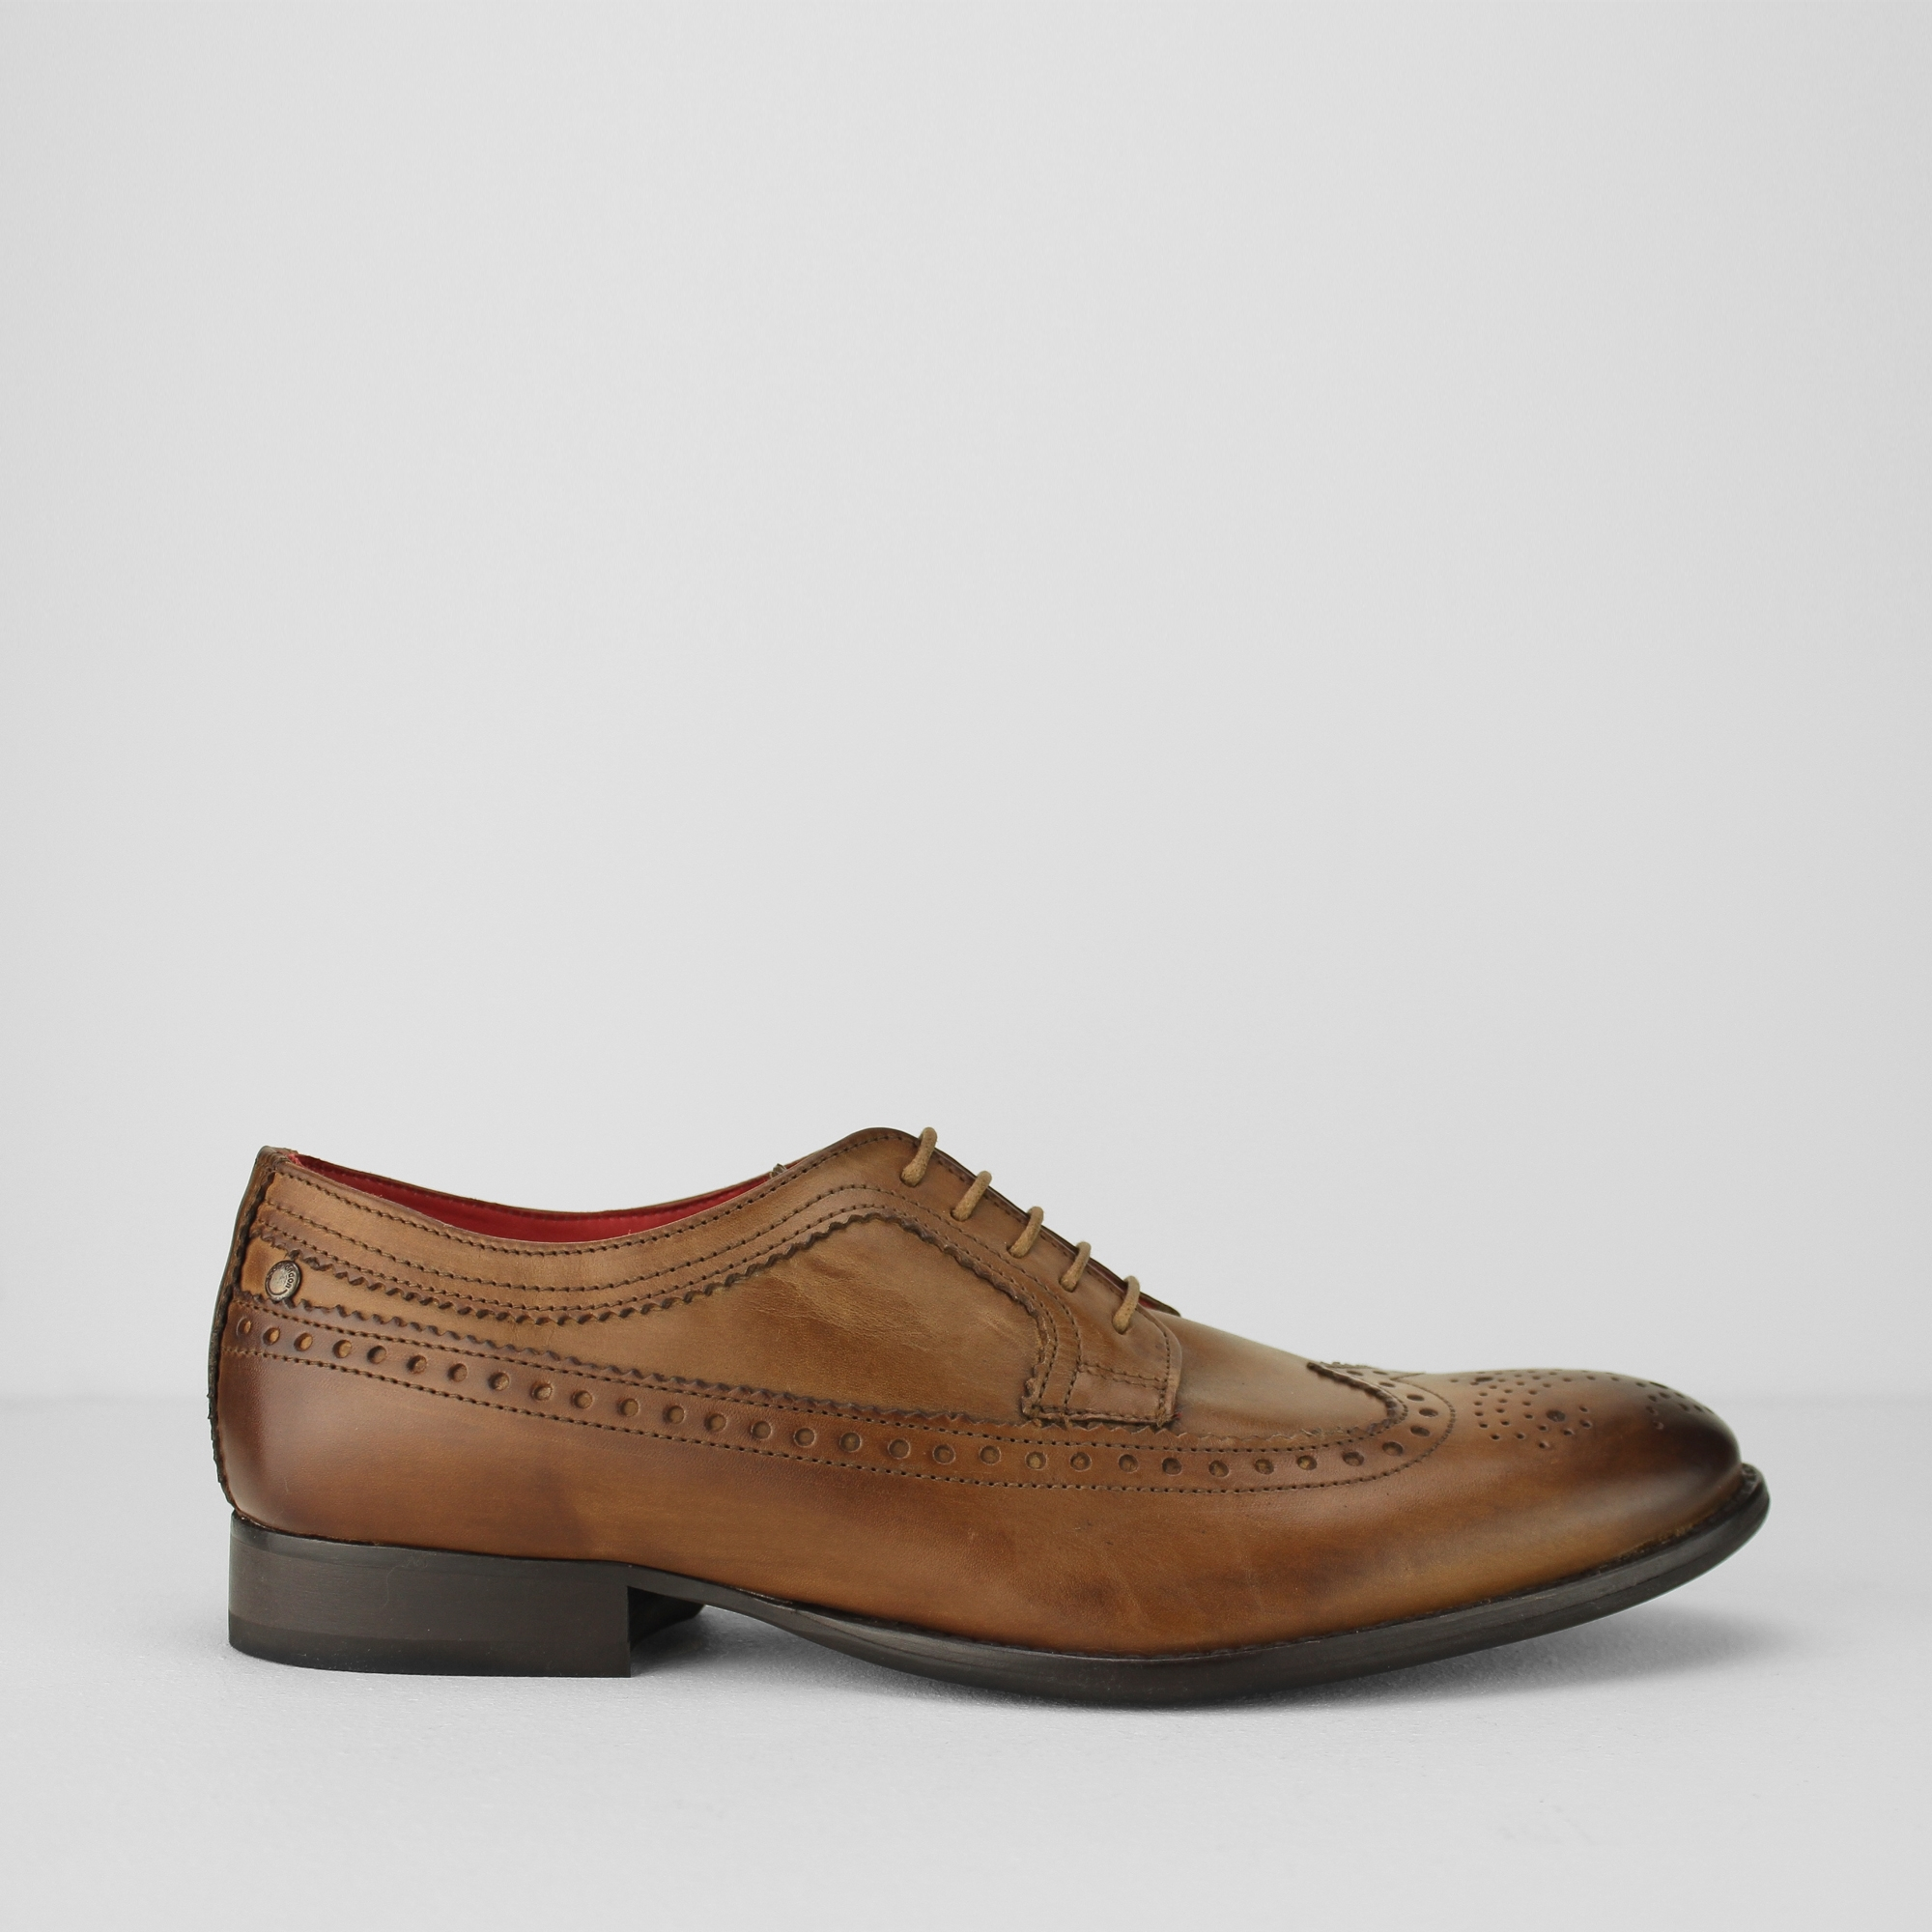 Base London BAILEY Mens Burnished Leather Office Smart Dress Brogue Shoes Tan